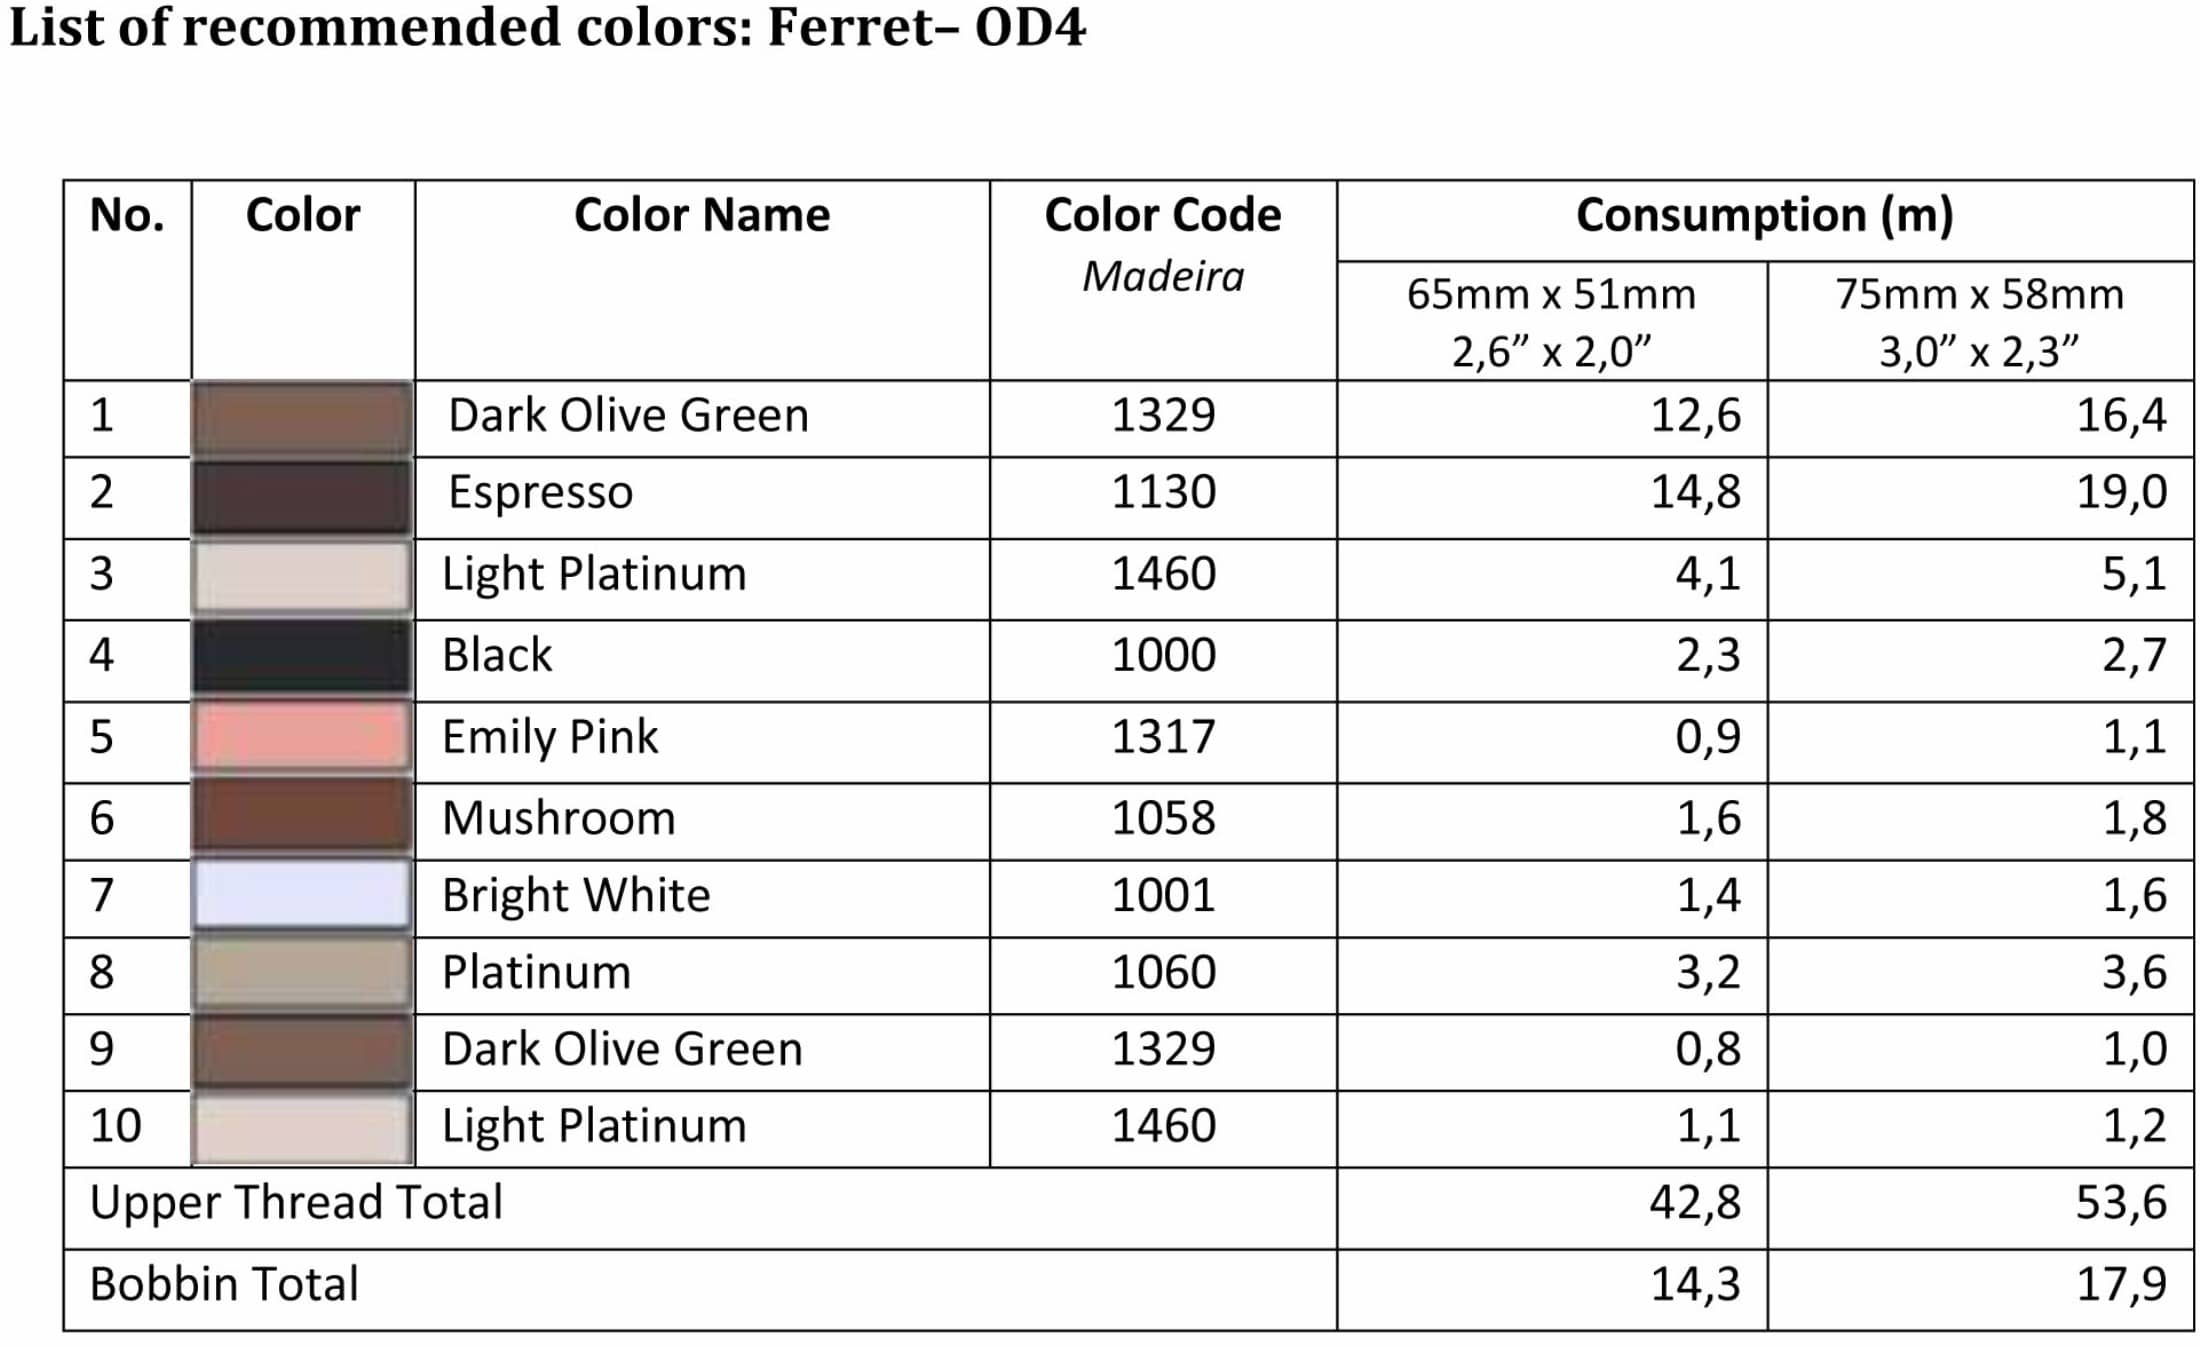 List of recommended colord - OD4